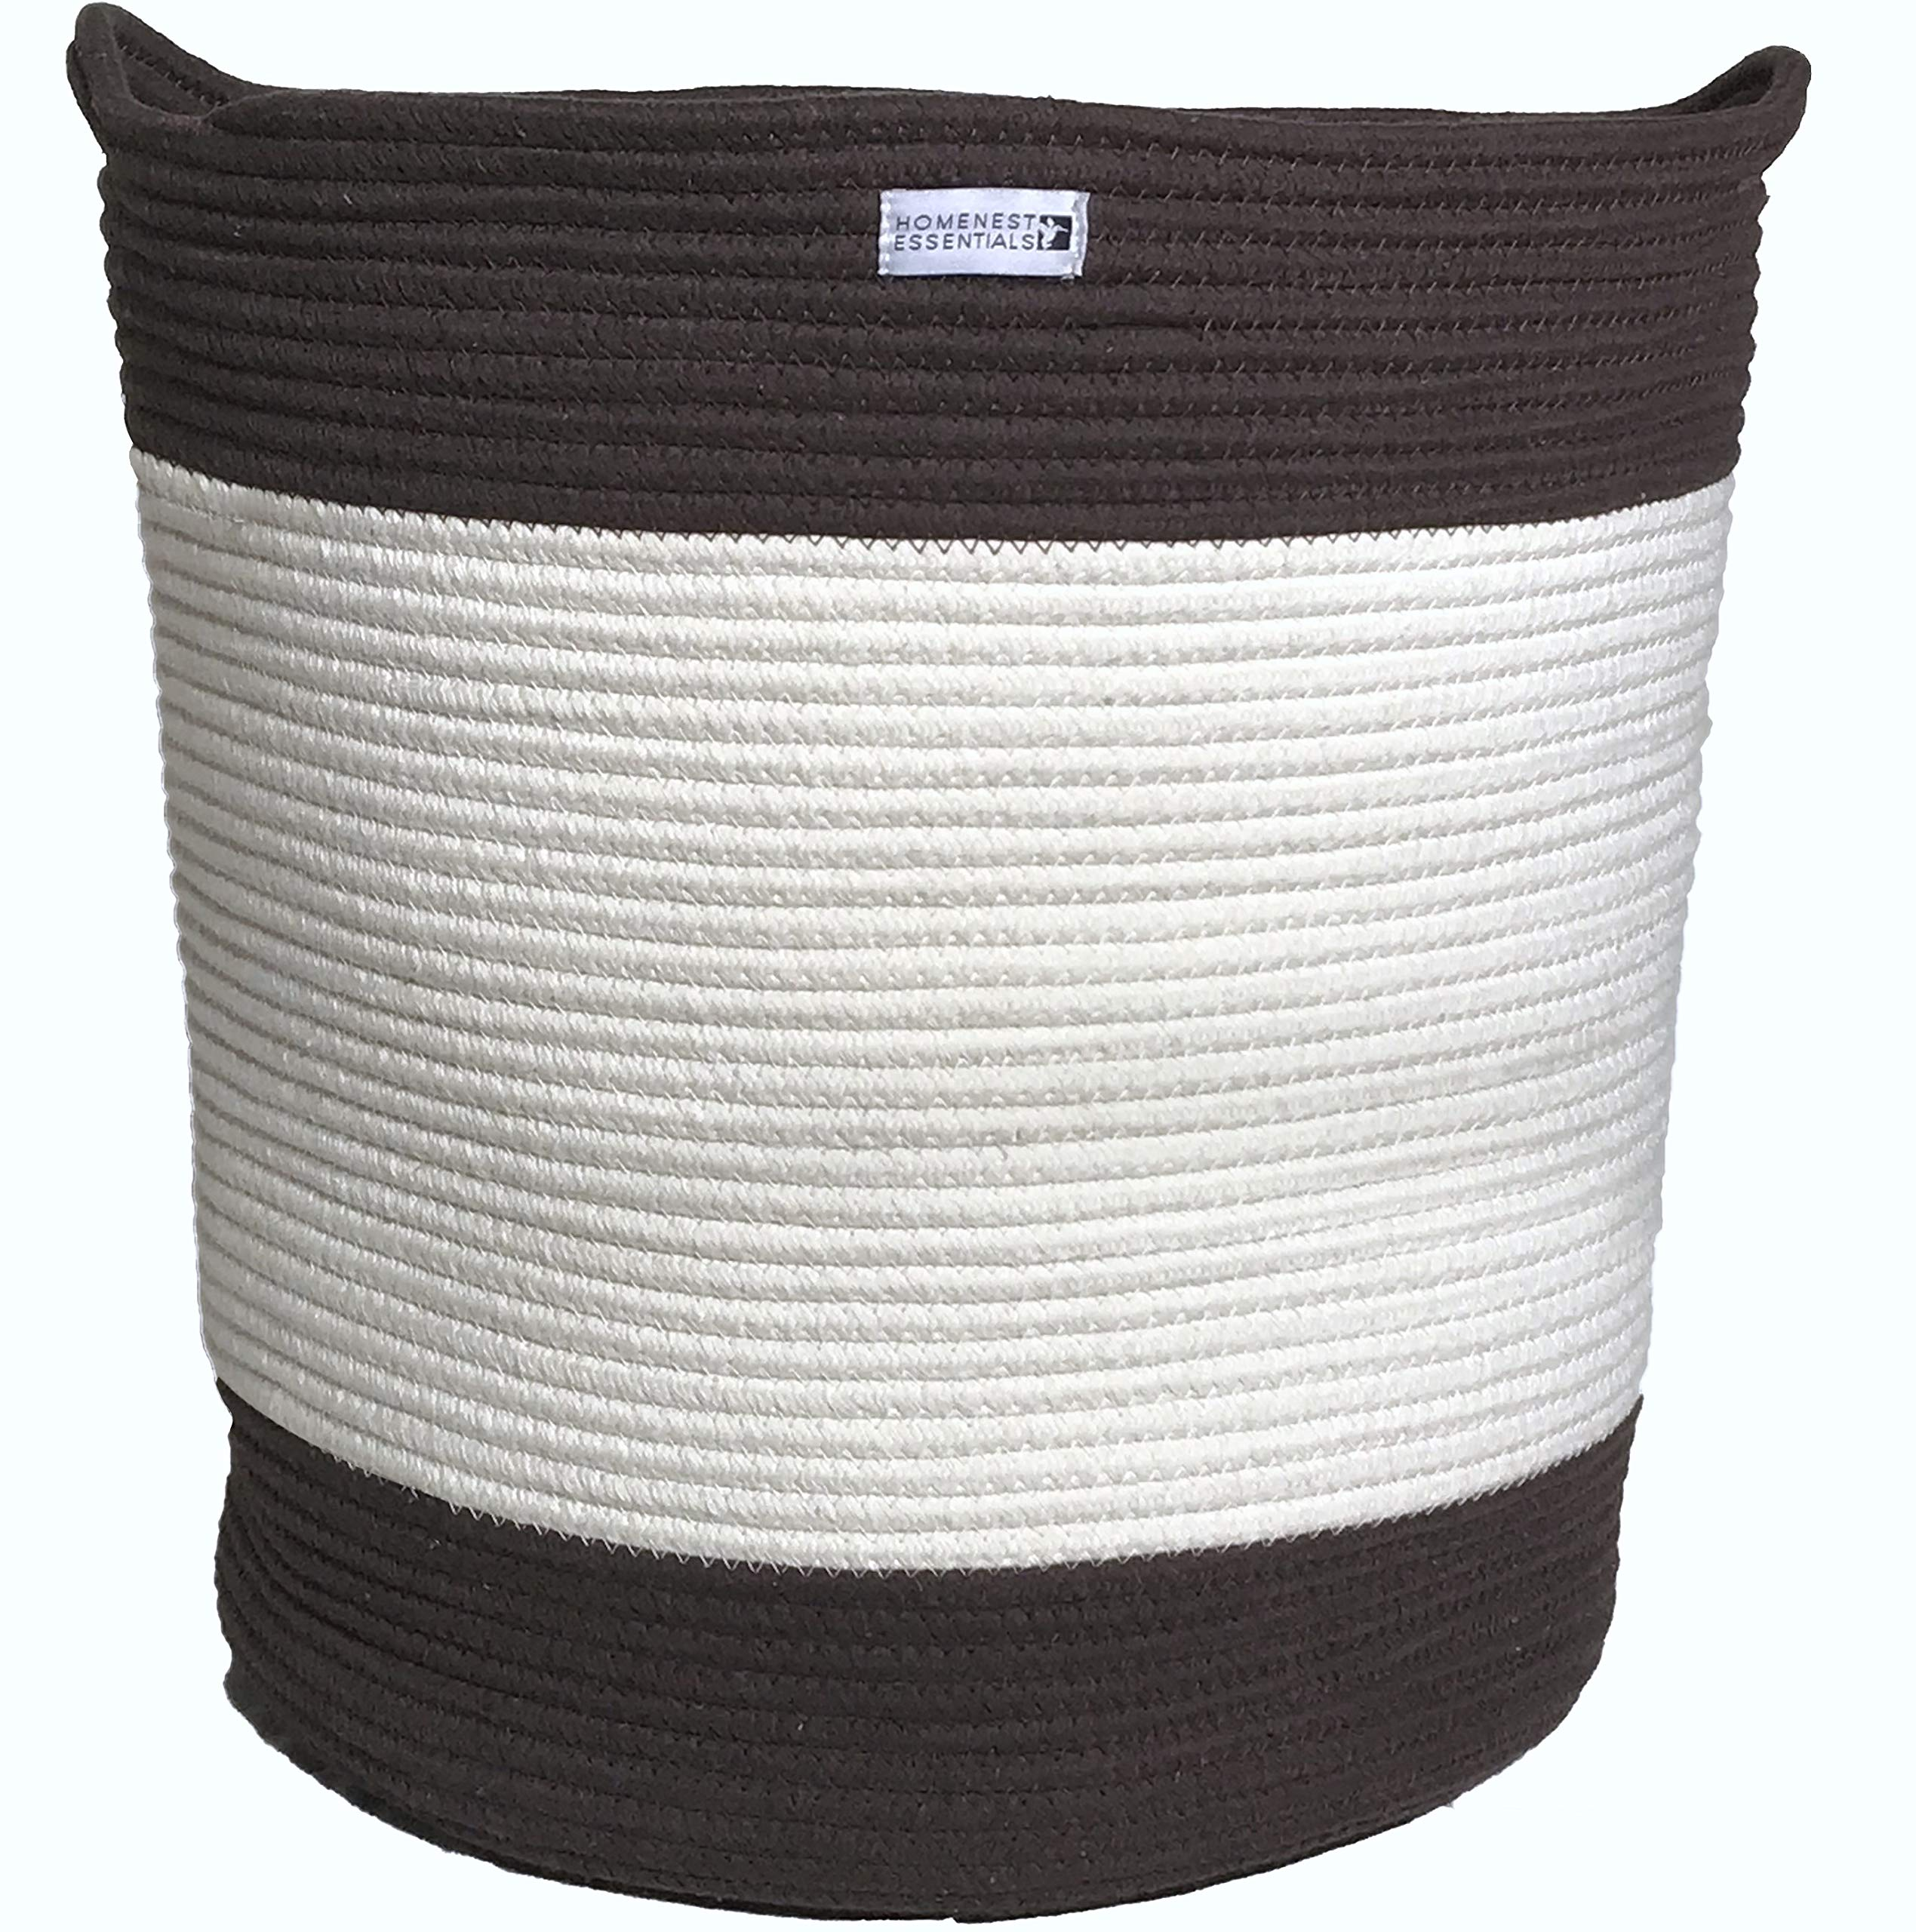 "HOMENEST ESSENTIALS Large Cotton Rope Storage Basket & Container 18"" x 16"" 